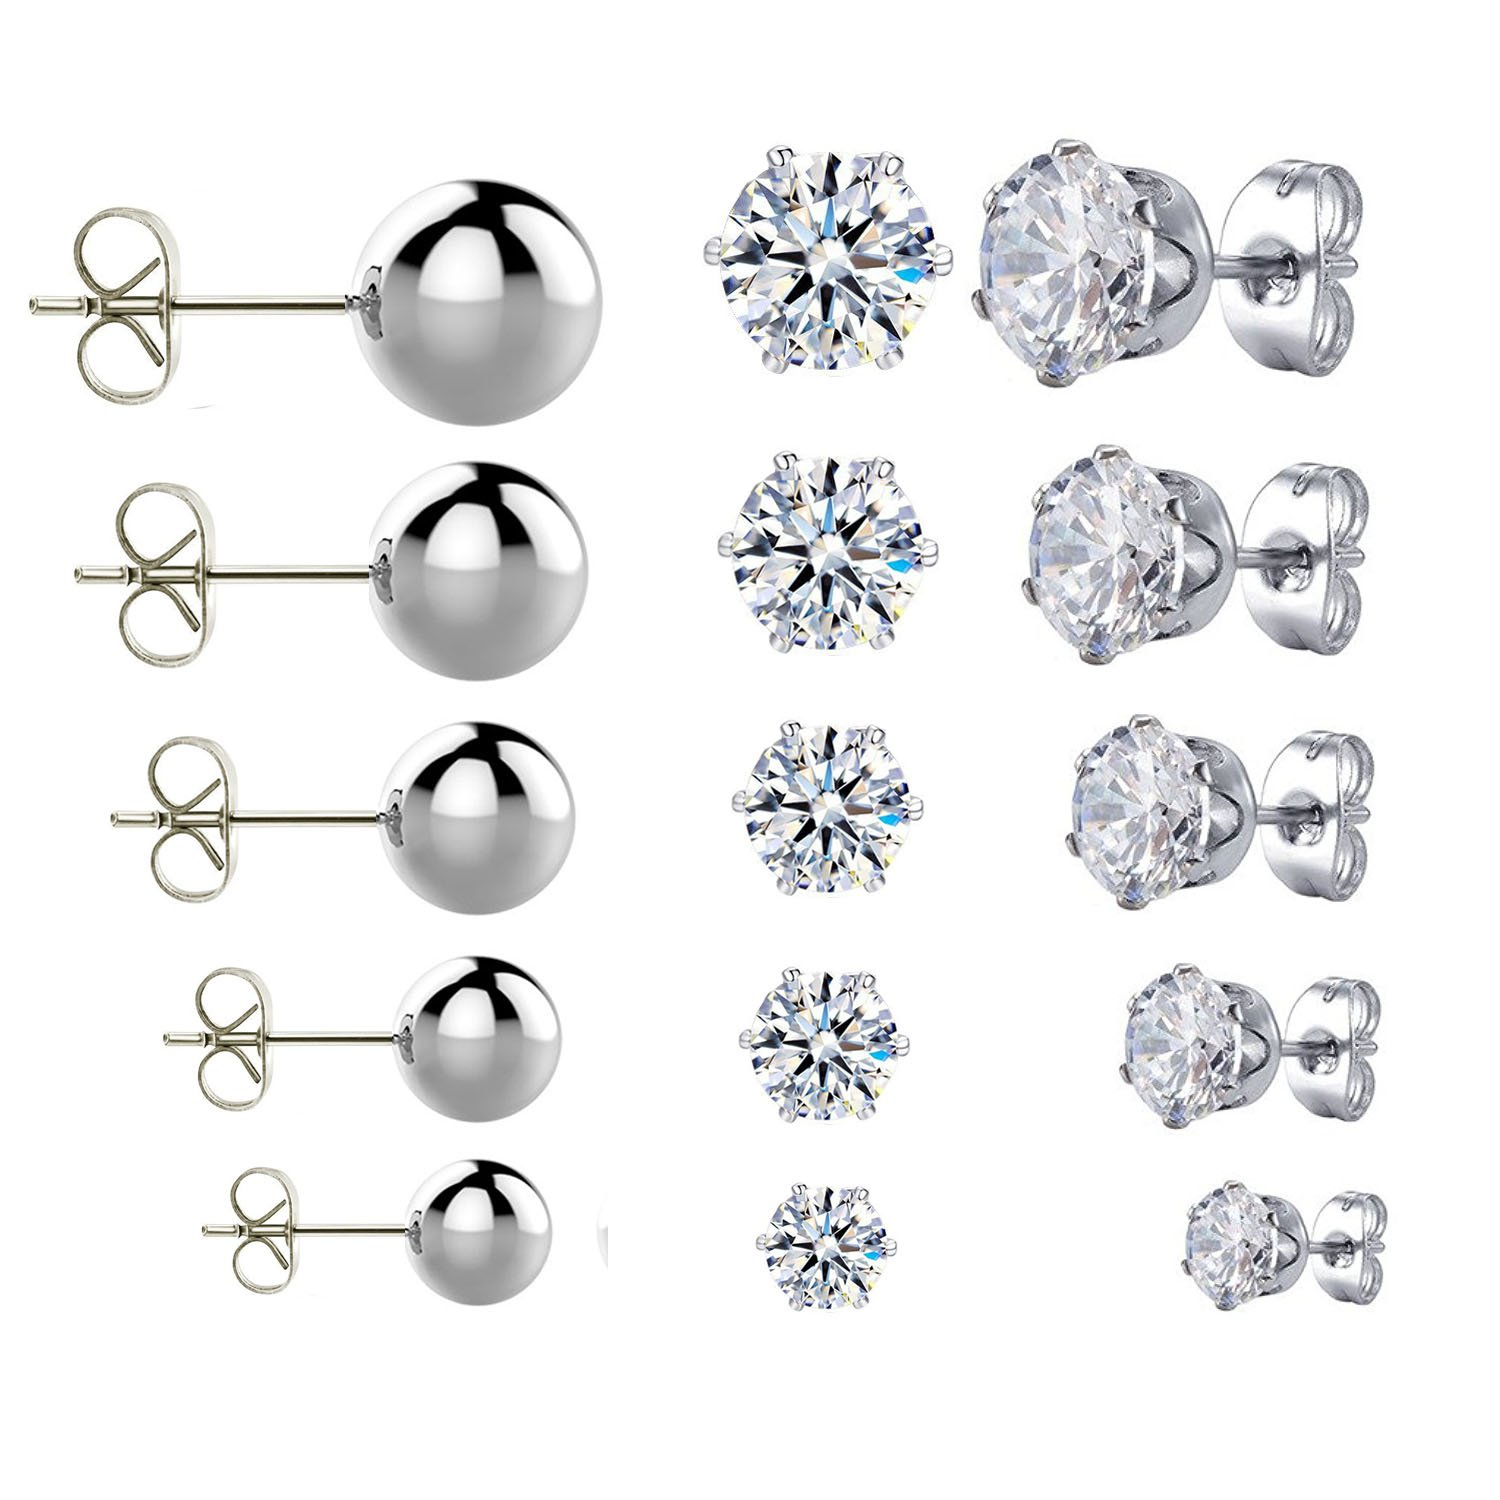 JININA Stainless Steel Earrings Stud Cubic Zirconia Stud Earrings Ball Stud Earrings for Women Men-3-7mm JES-0102